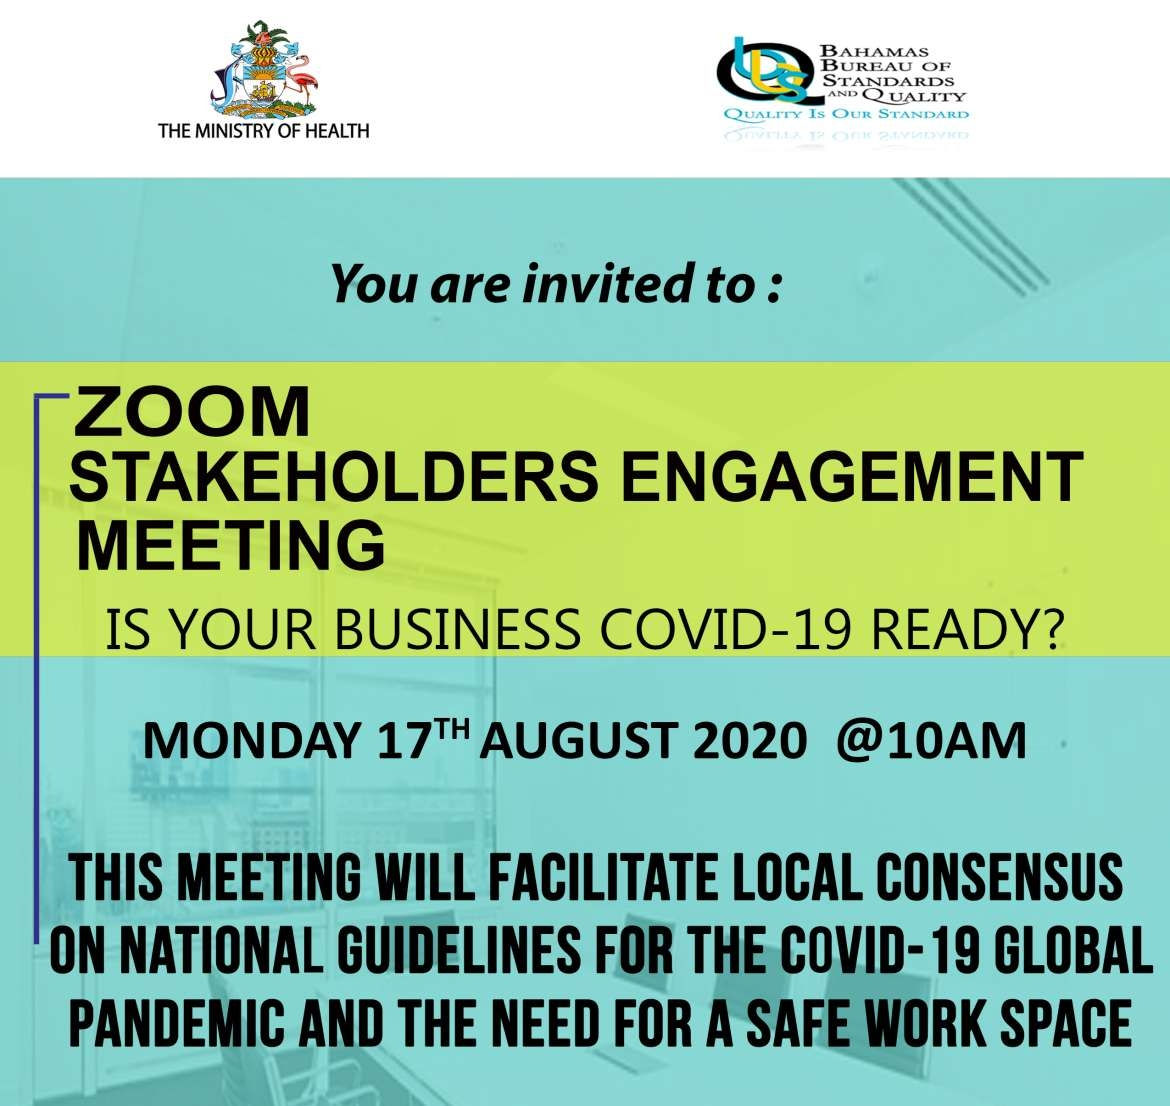 Workplace Guidelines and Assessment: Stakeholder Engagement Meeting August 17, 2020